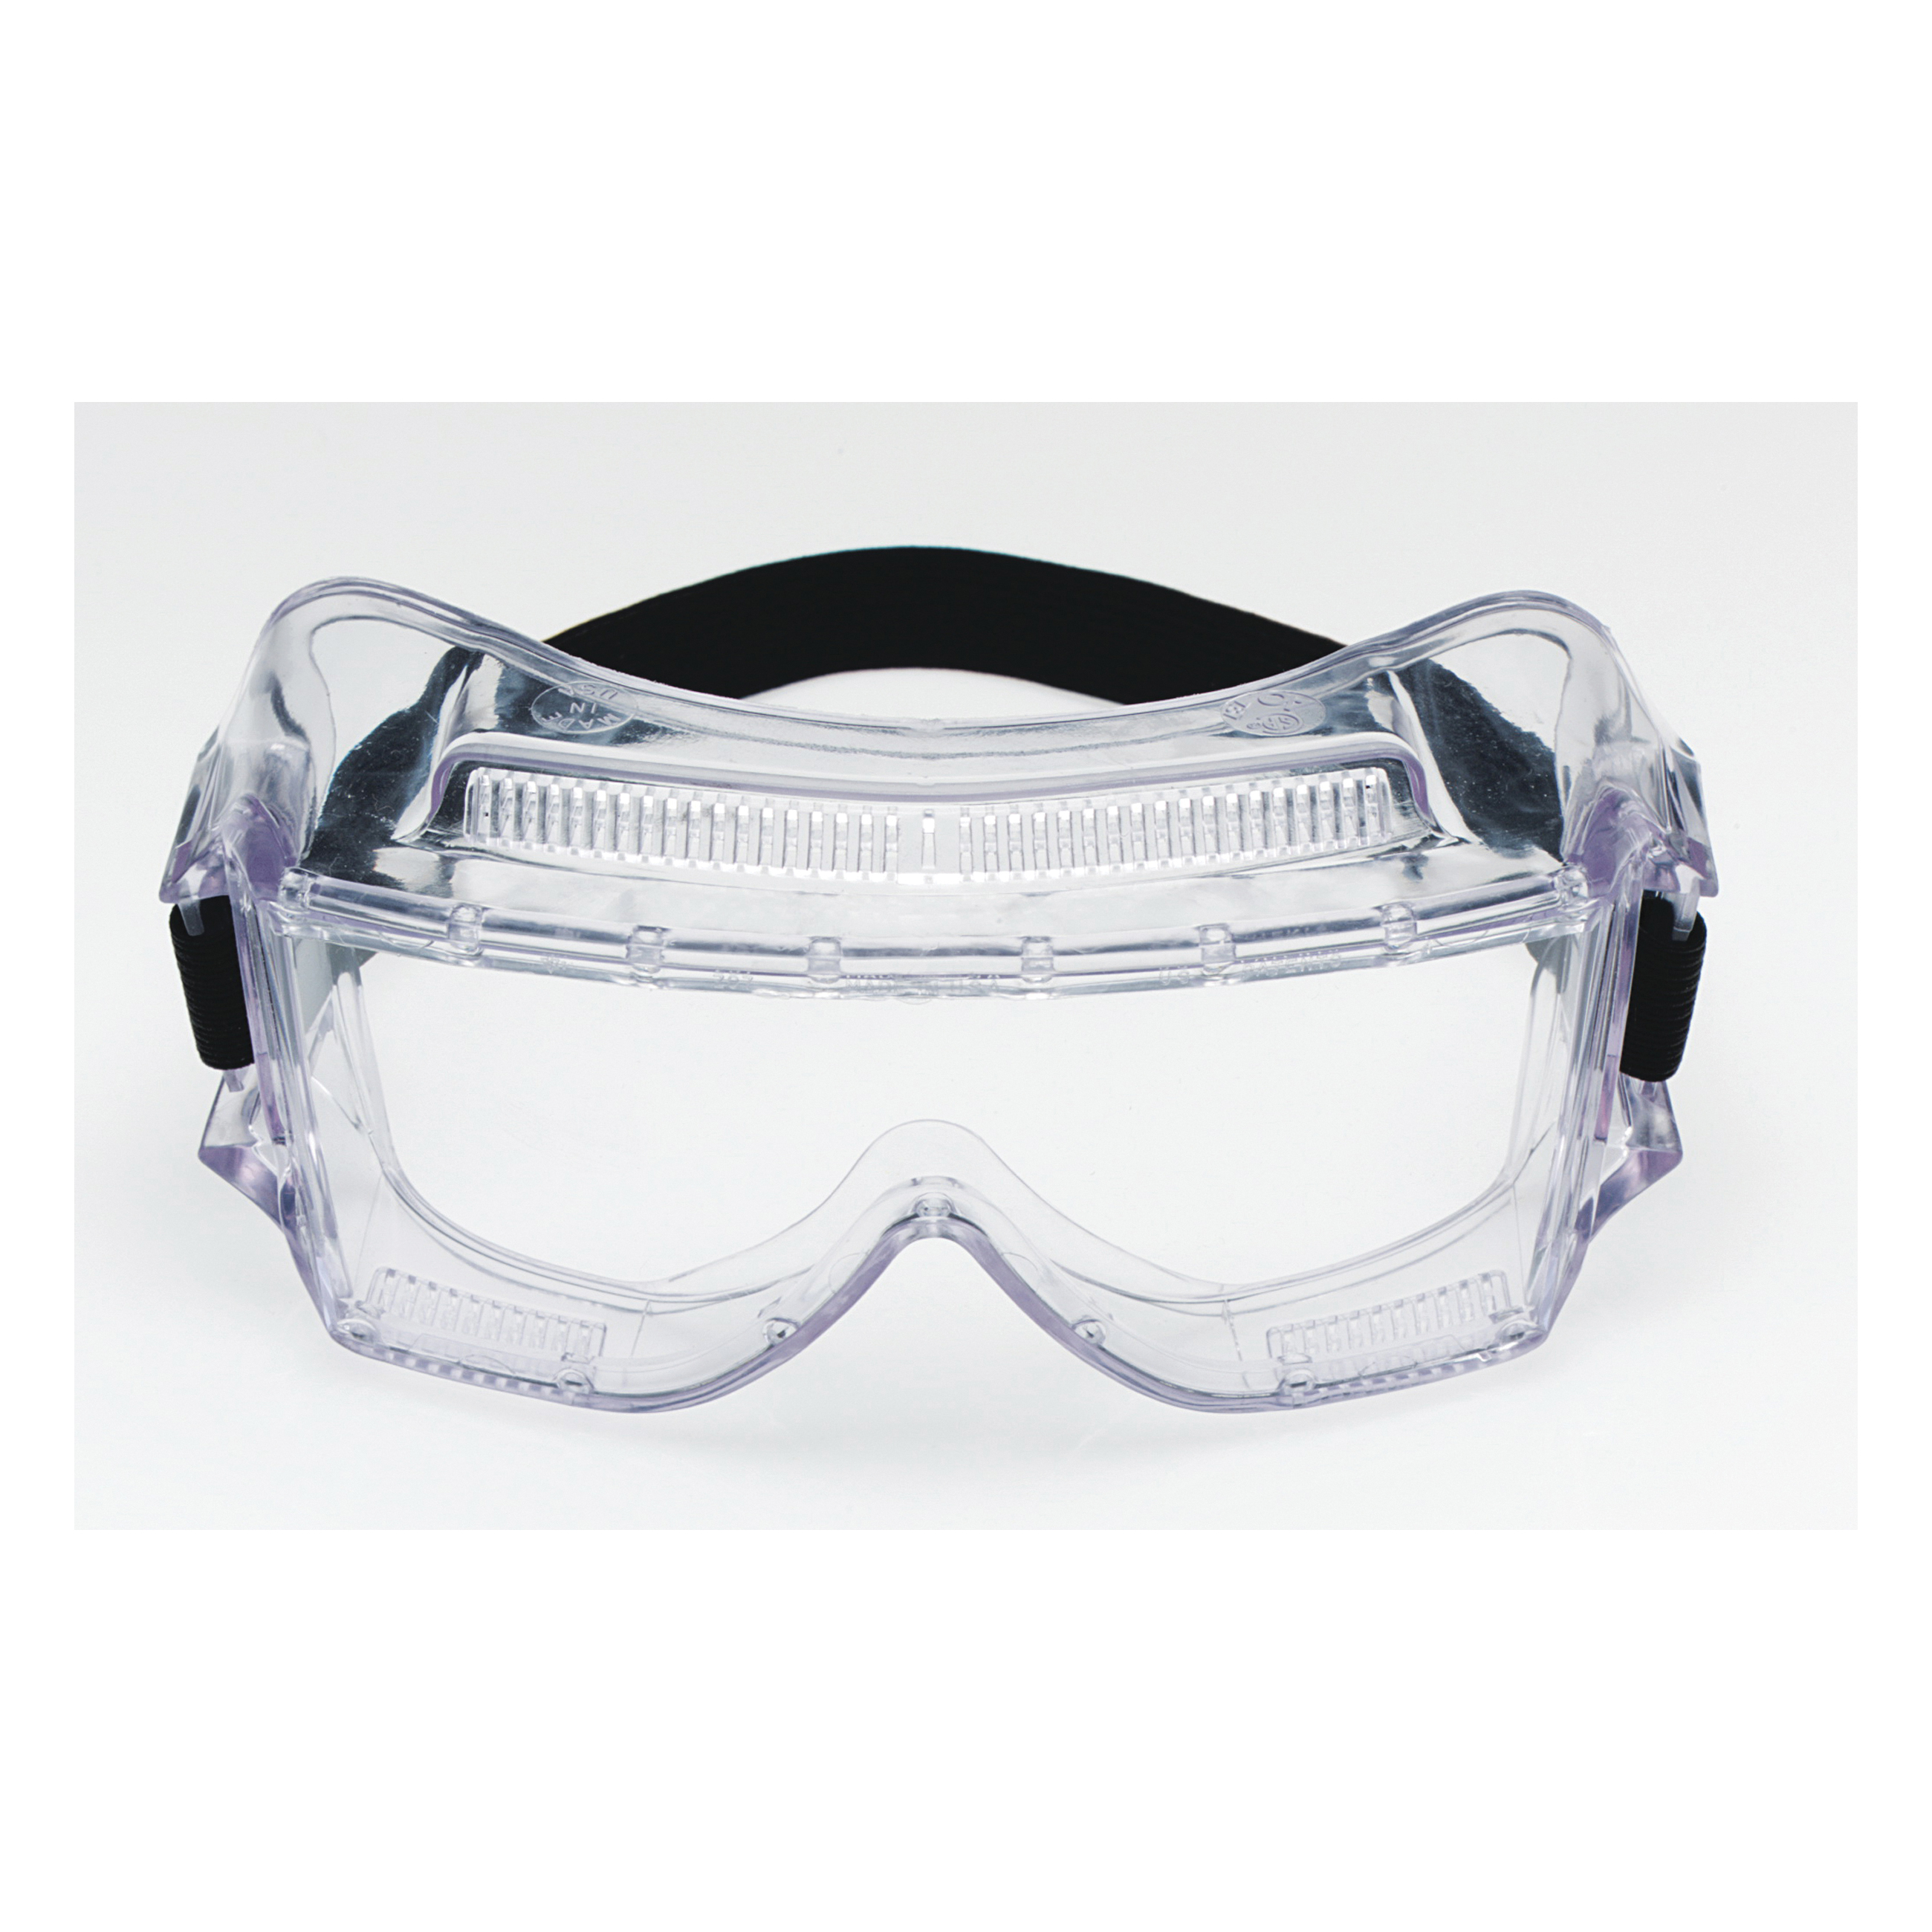 3M™ Centurion™ 078371-62388 Standard Value Safety Goggles, Anti-Fog/Impact-Resistant/UV-Protective Clear Polycarbonate Lens, 99.9 % UV Protection, Elastic Strap, ANSI Z87.1-2003, CSA Z94.3-2007